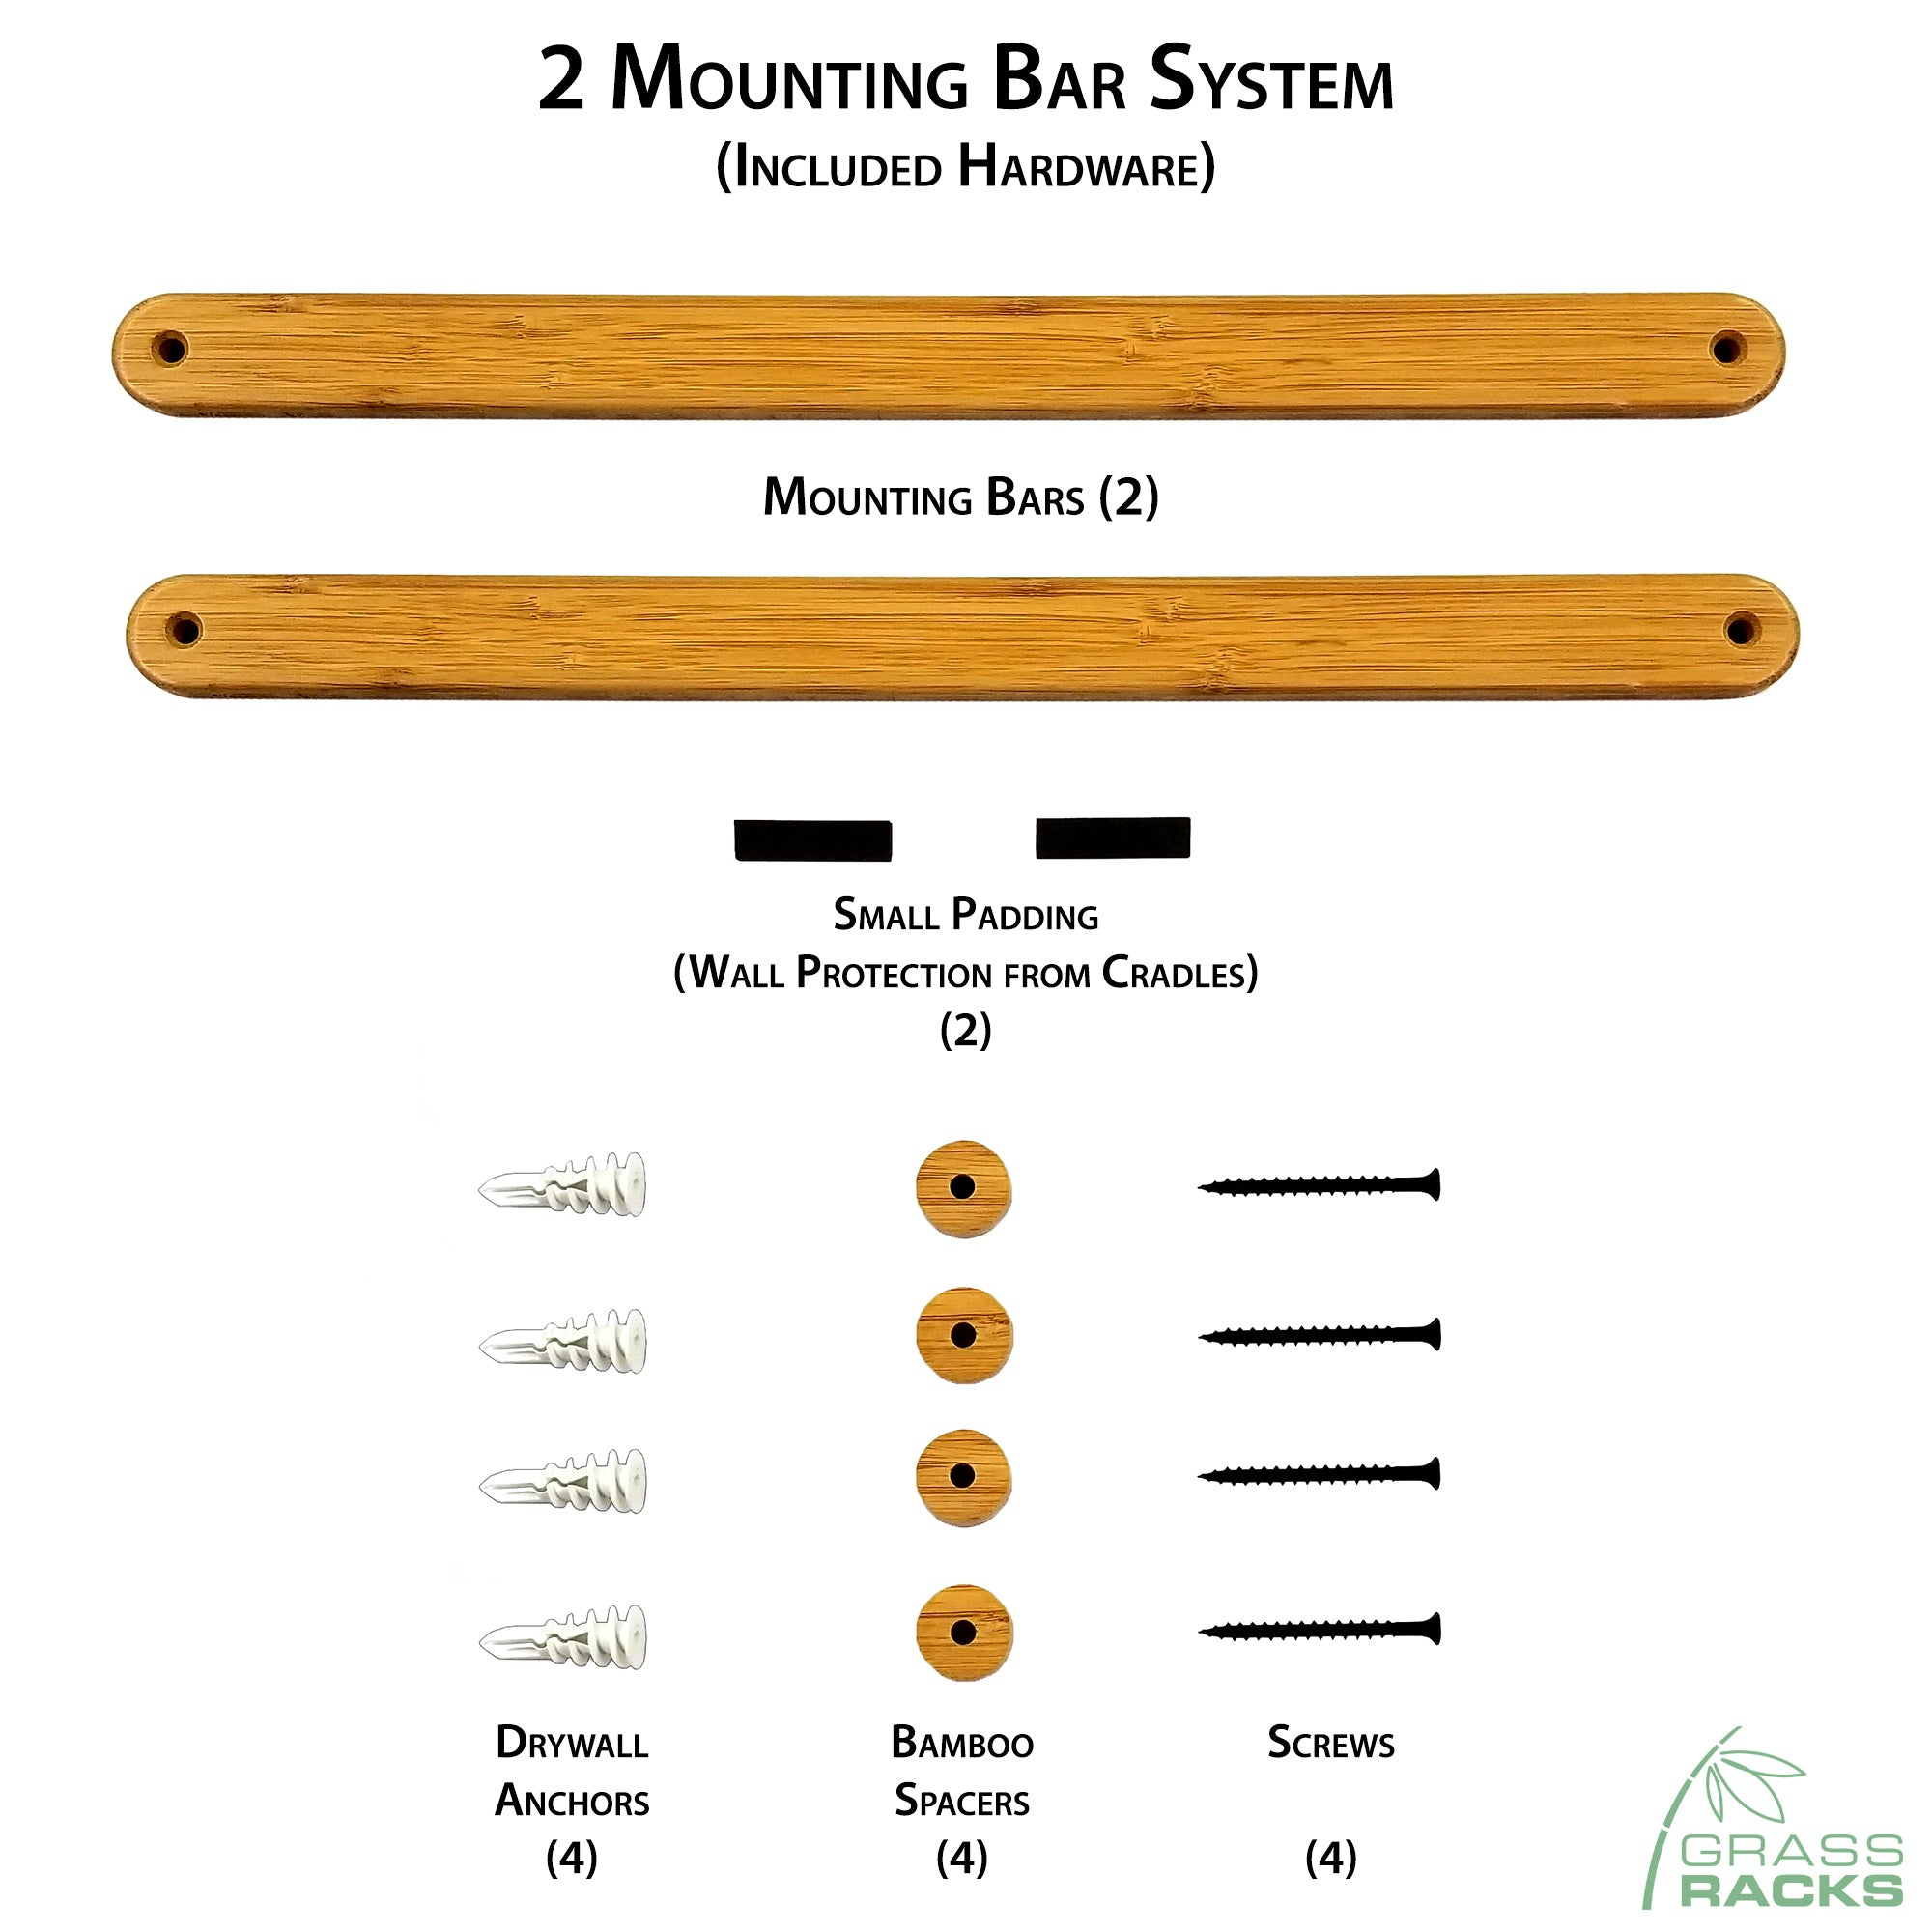 Surfboard Wall Rack Installation Hardware & Mounting System - The Kaua'i Series